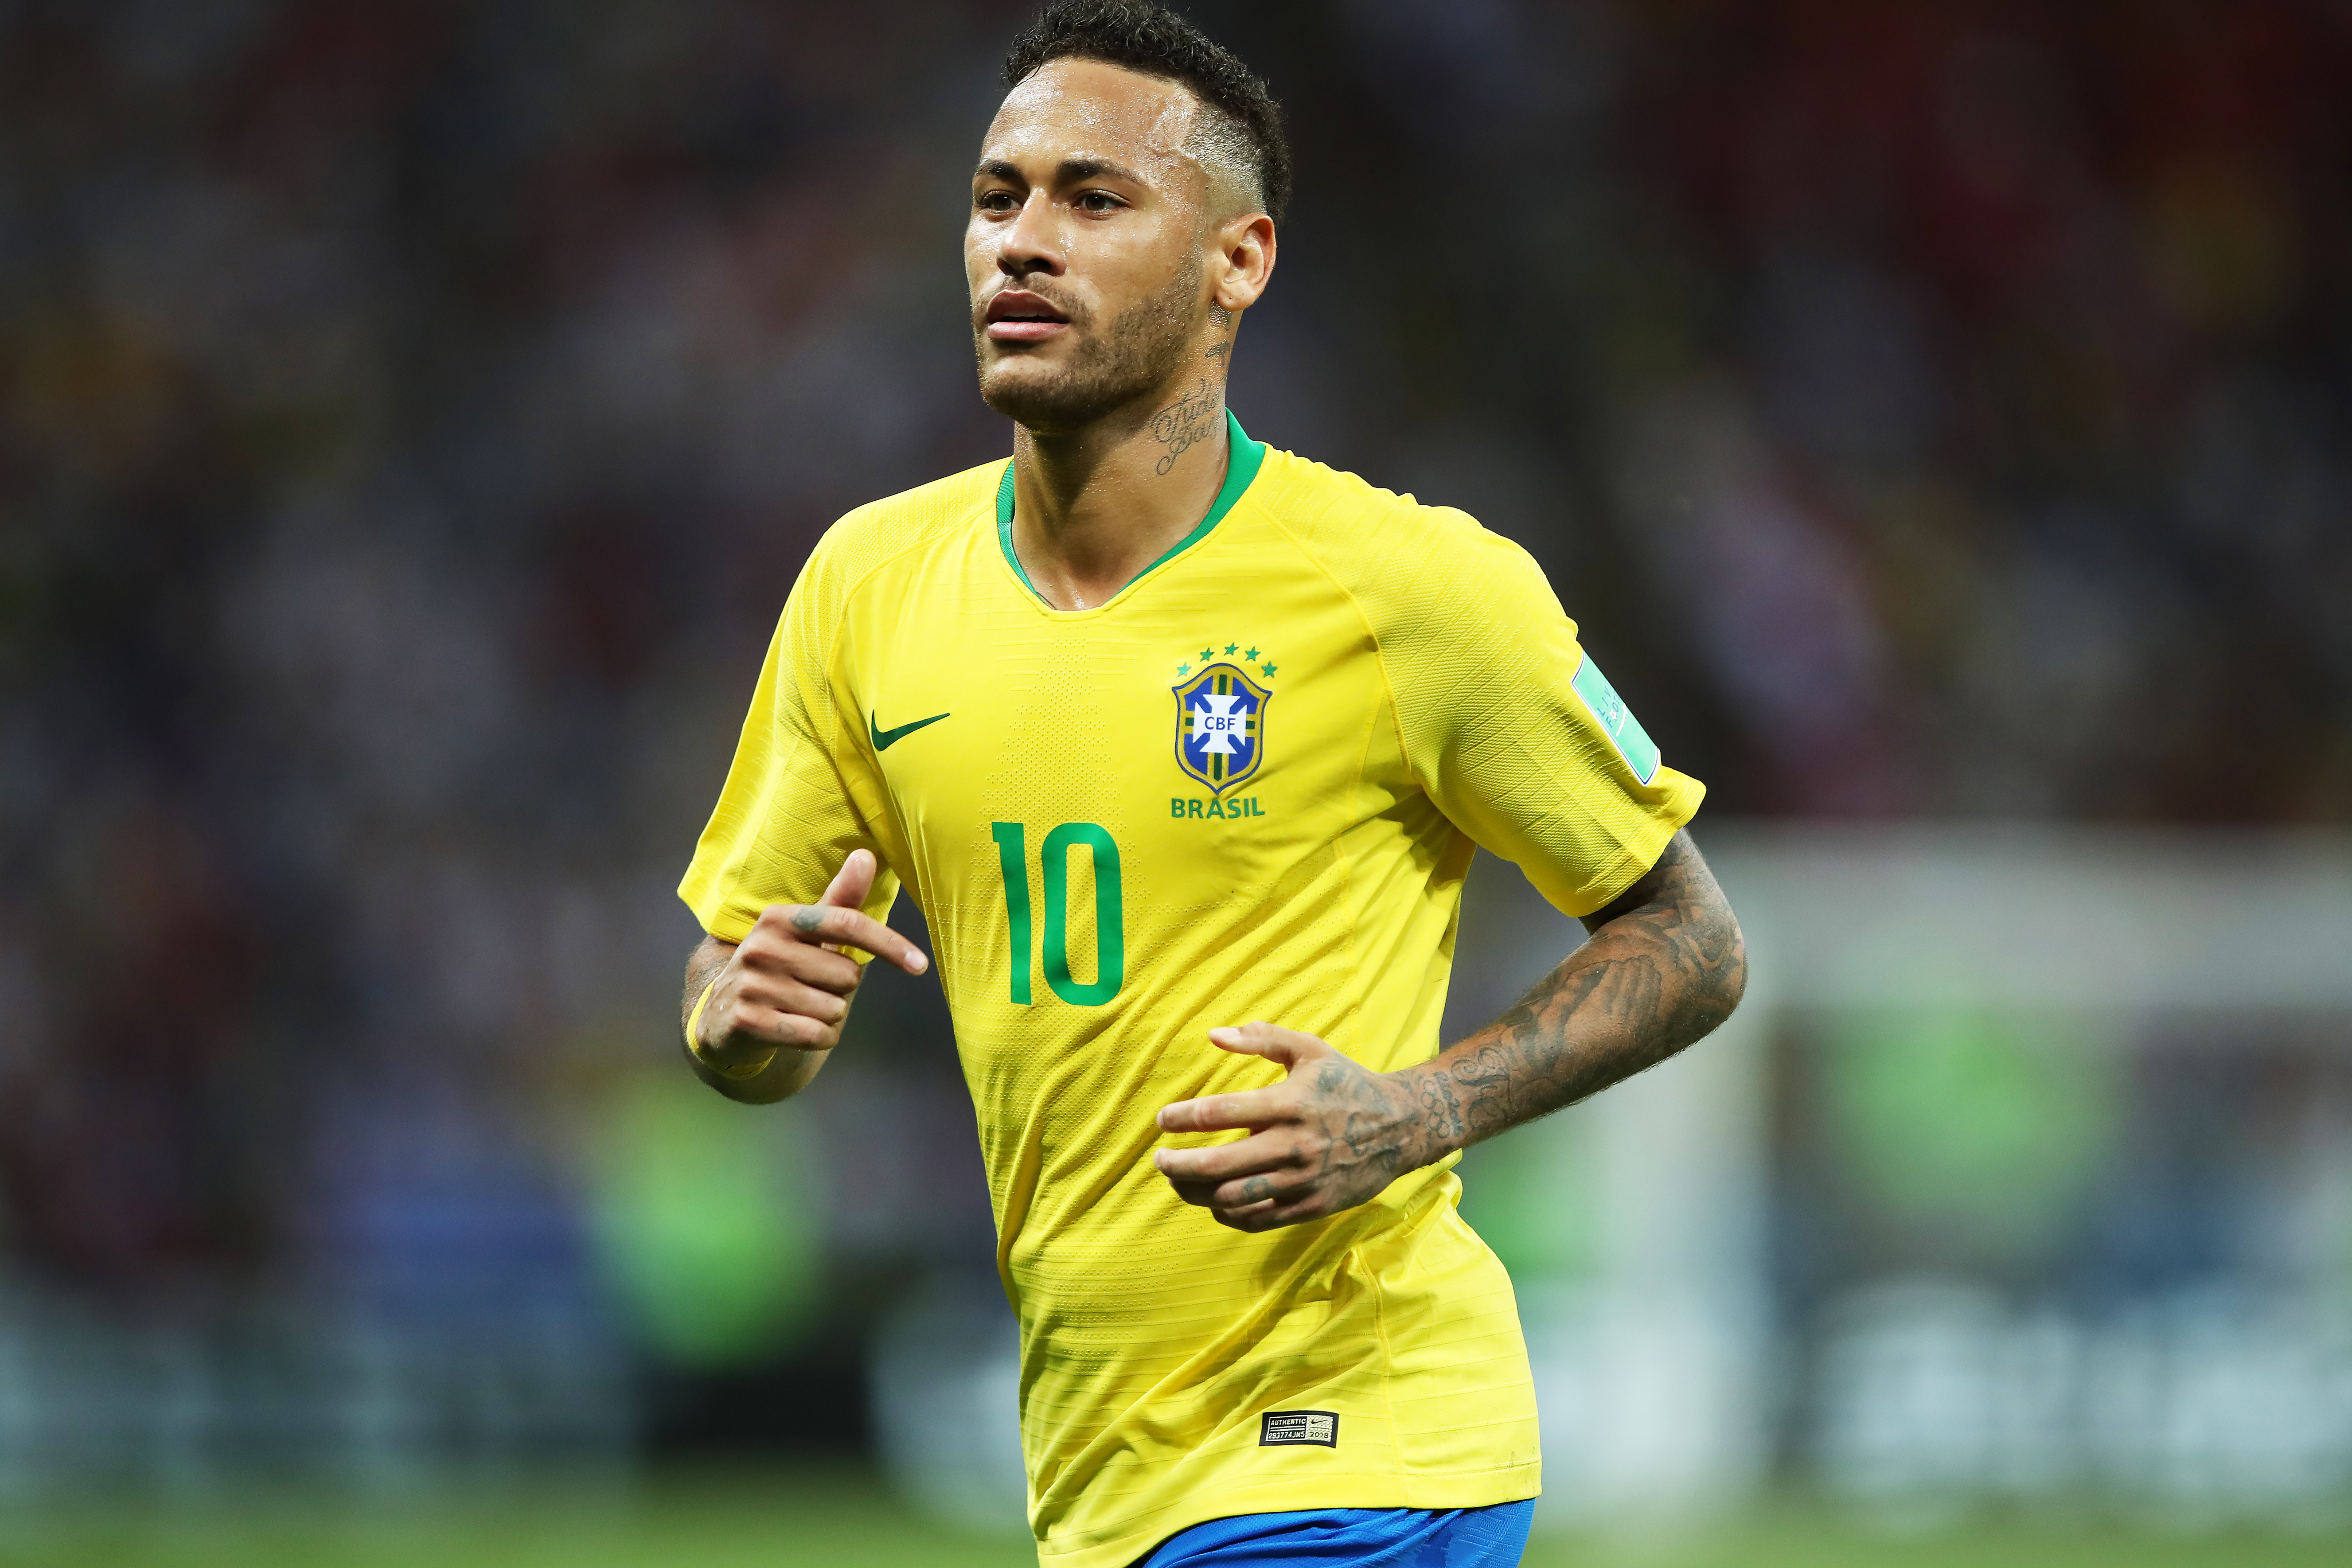 Neymar of Brazil is seen during the 2018 FIFA World Cup Russia Quarter Final match between Winner Game 53 and Winner Game 54 at Kazan Arena on July 6, 2018 in Kazan, Russia.